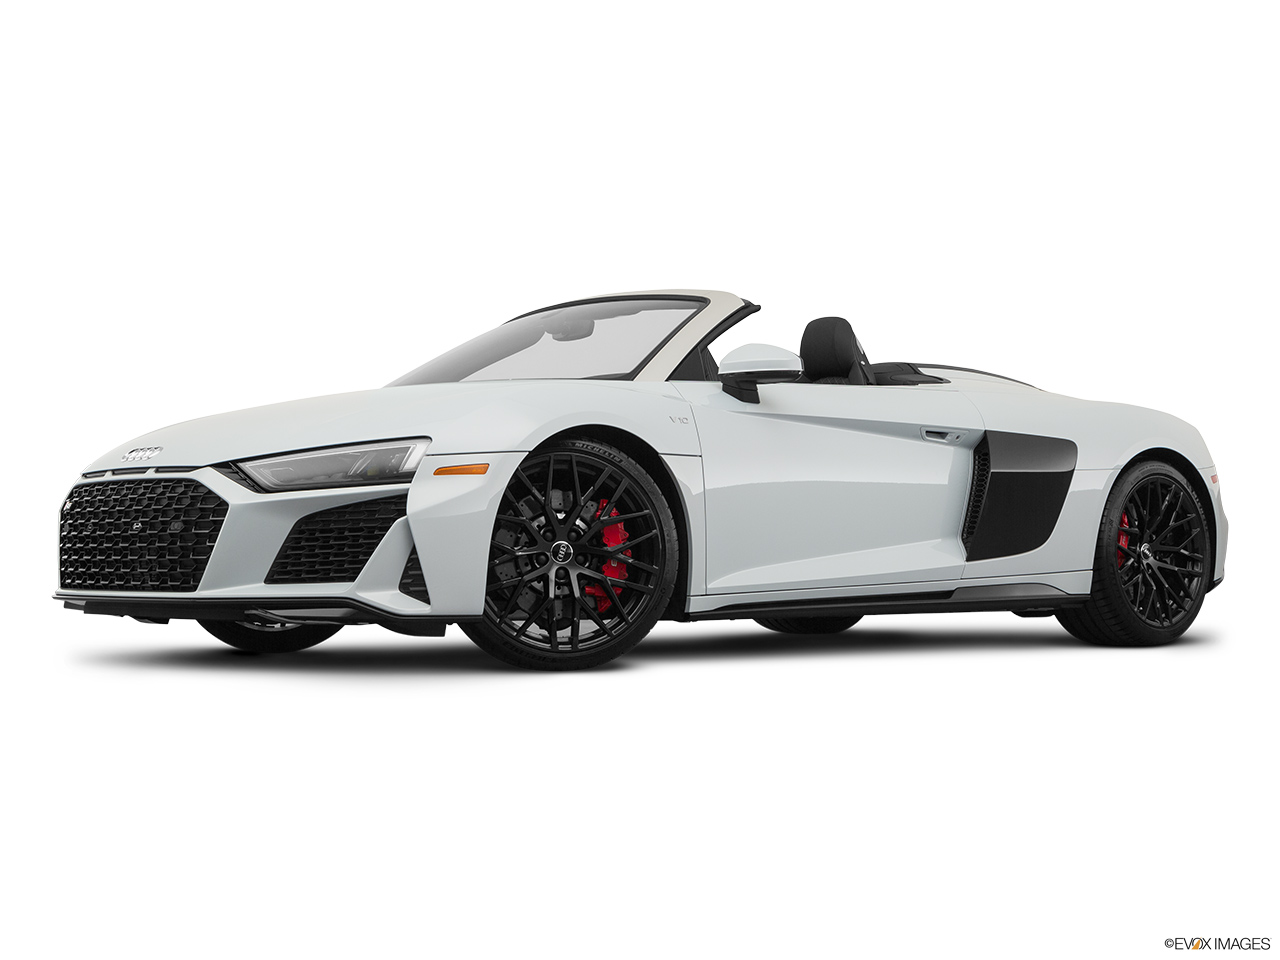 2020 Audi R8 Spyder V10 Low/wide front 5/8.